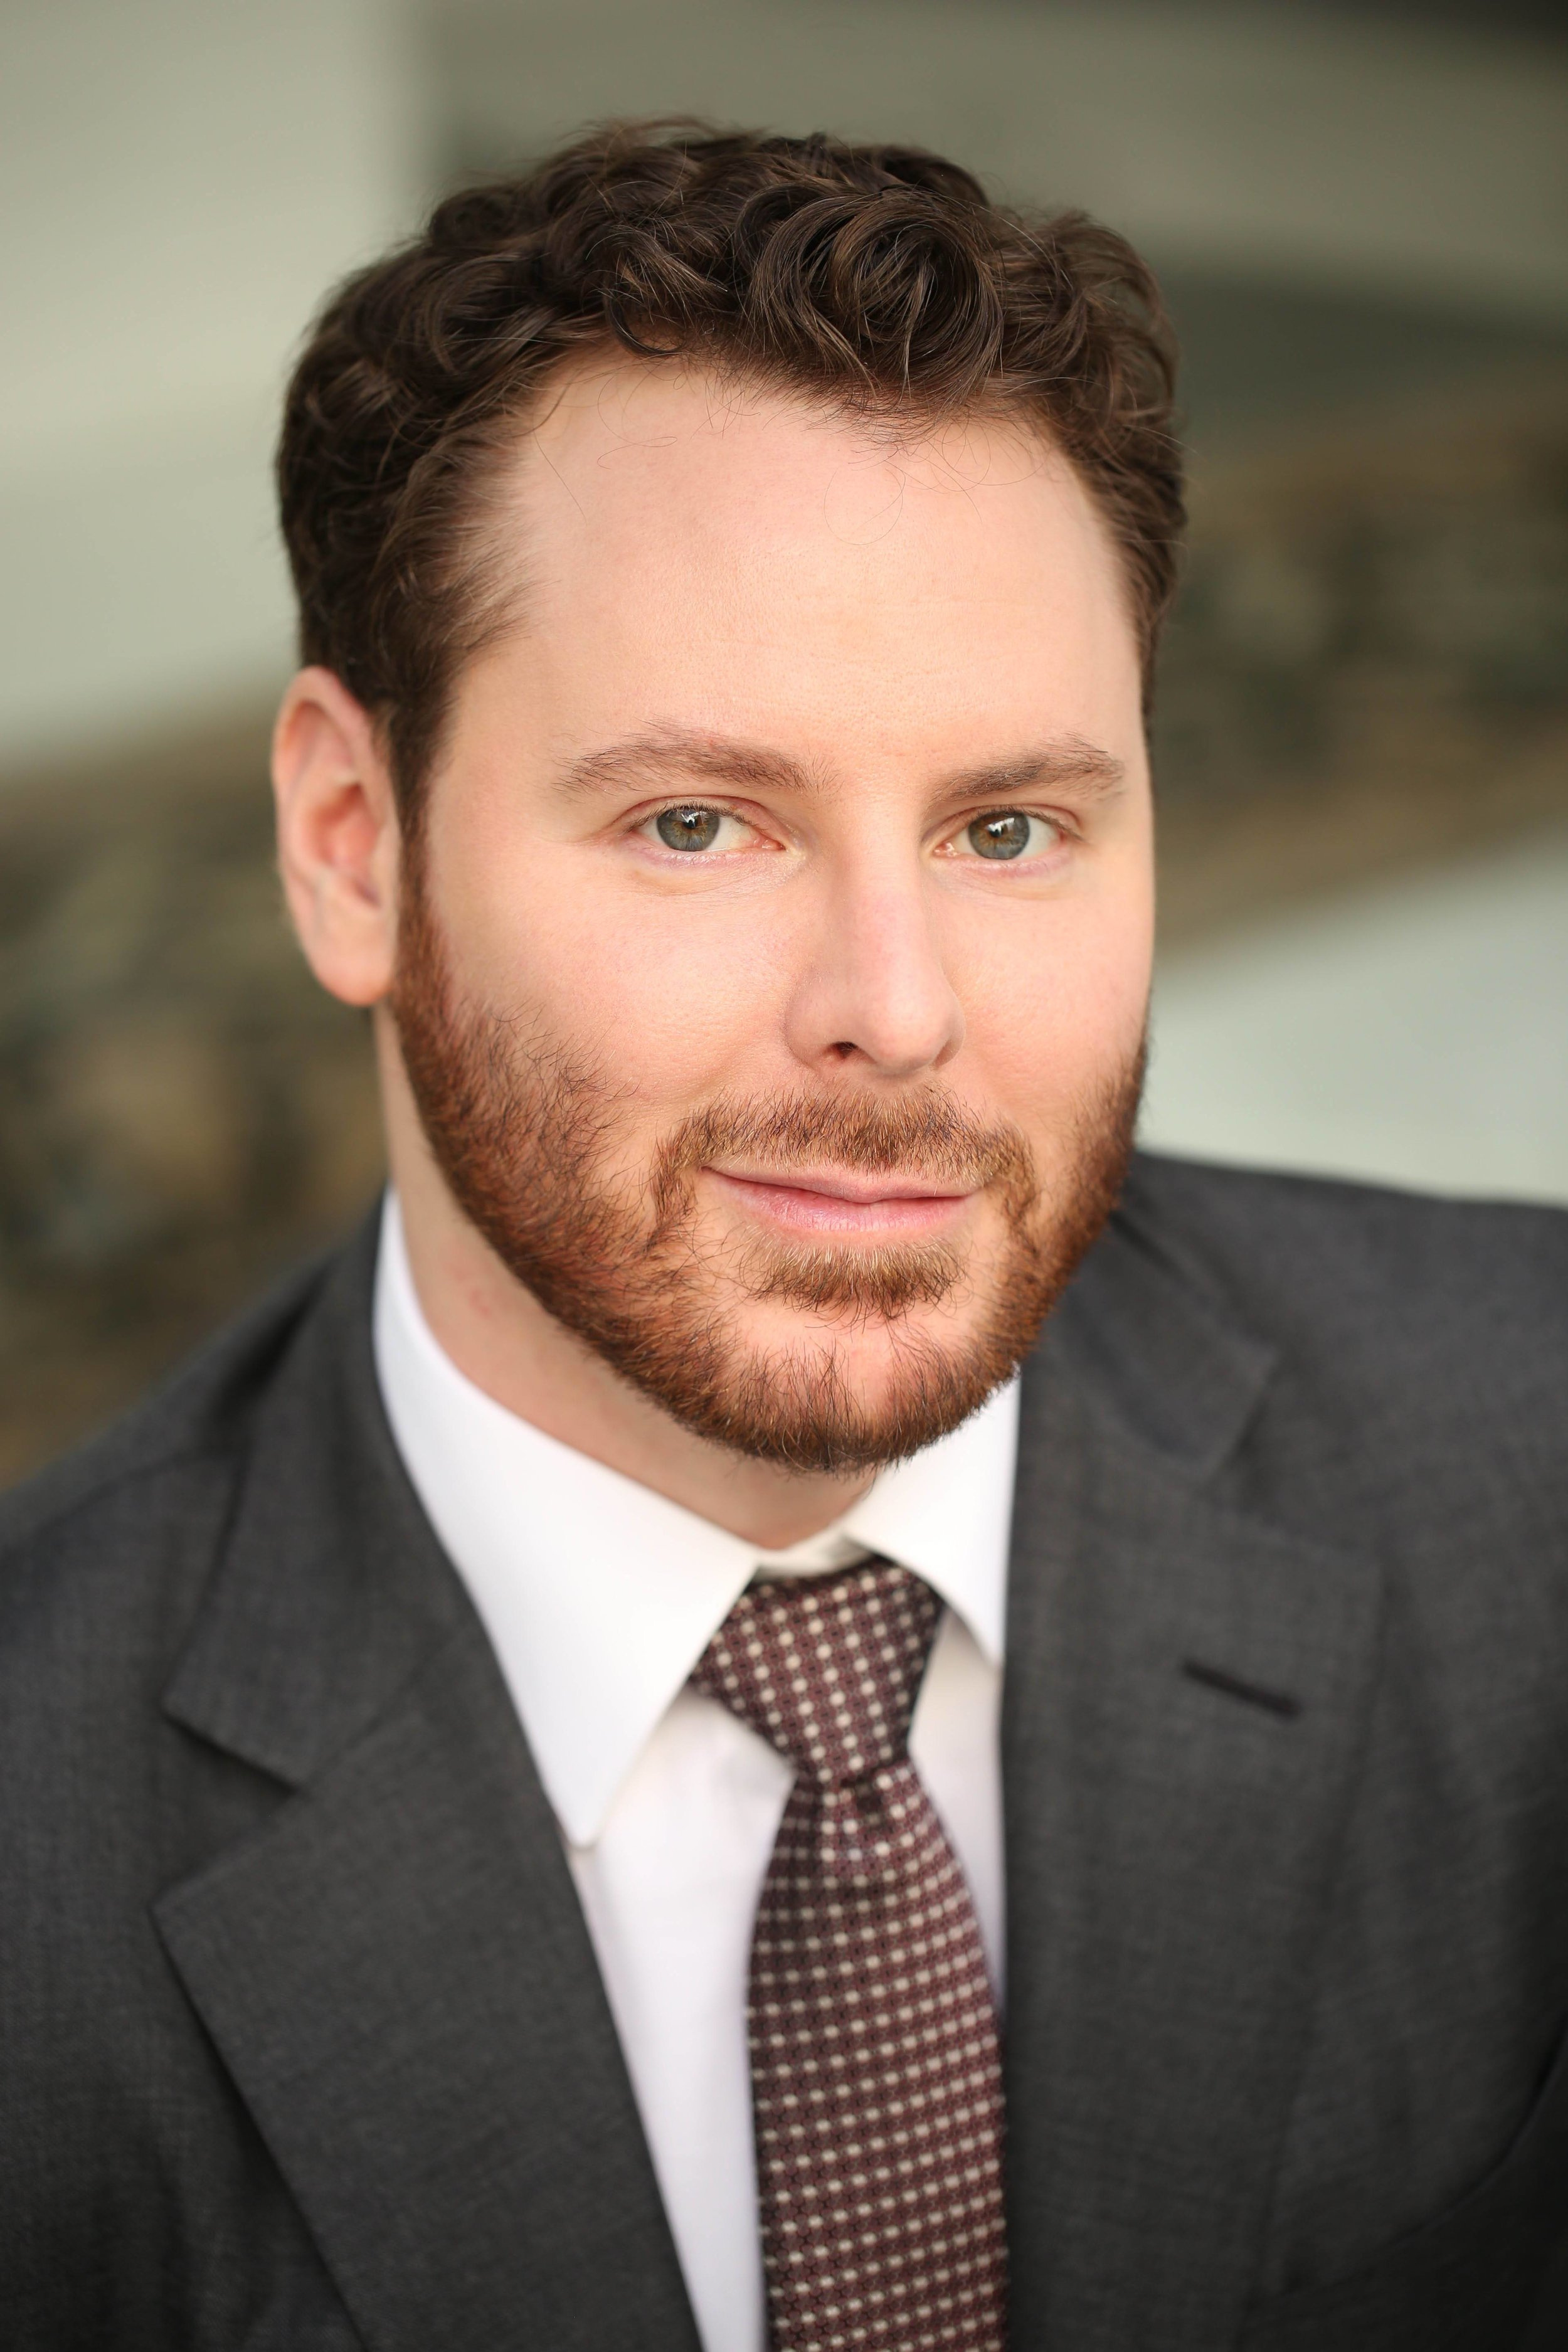 A Portrait of Sean Parker  - Sean Parker Foundation